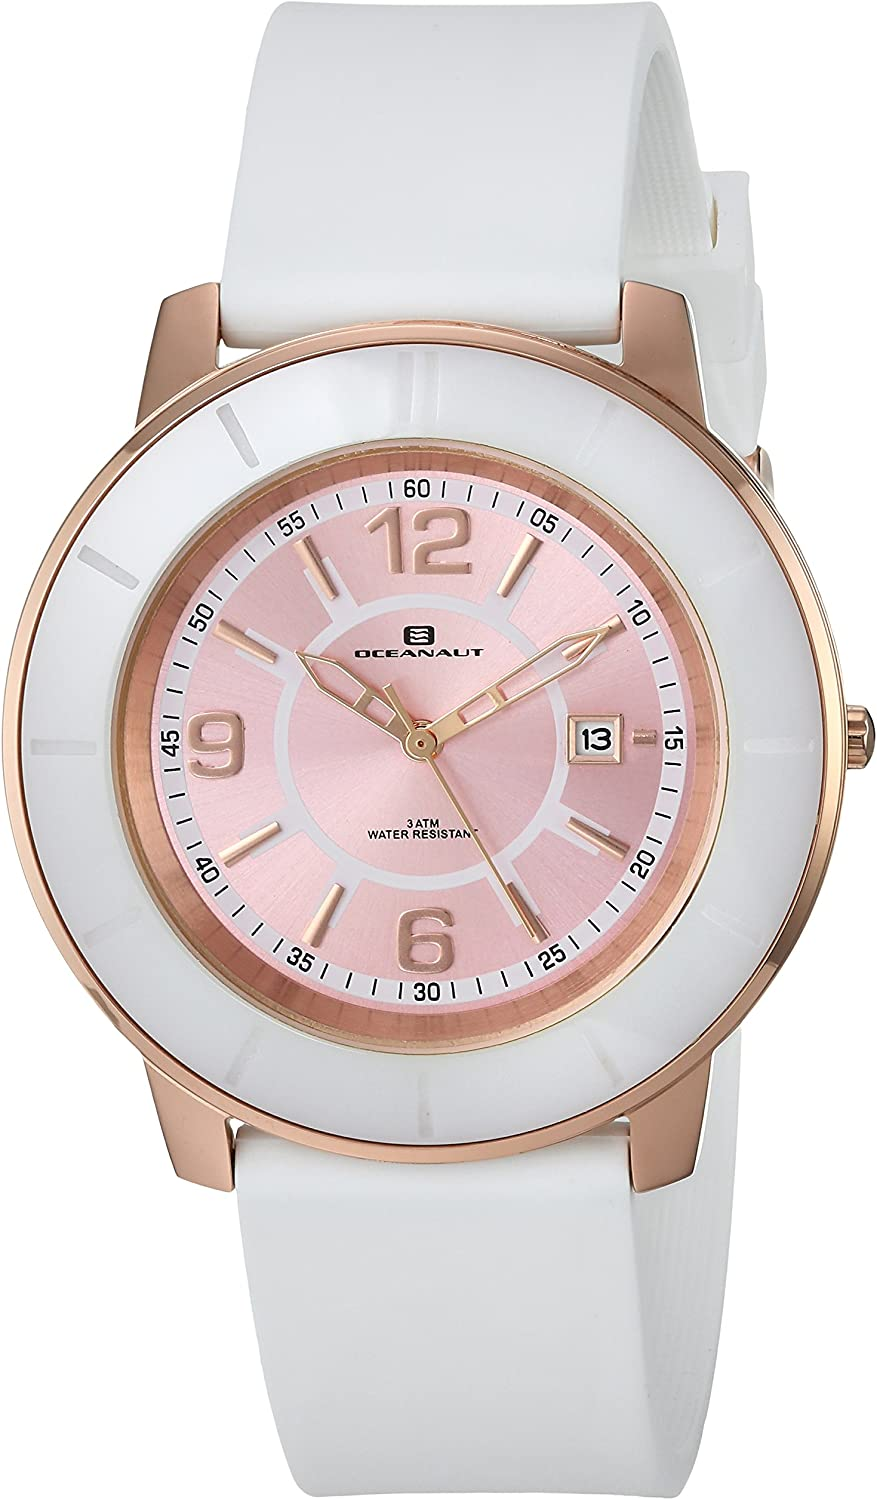 Cheap sale Oceanaut Women's Satin Stainless Steel Silicone All stores are sold Wh Quartz Strap